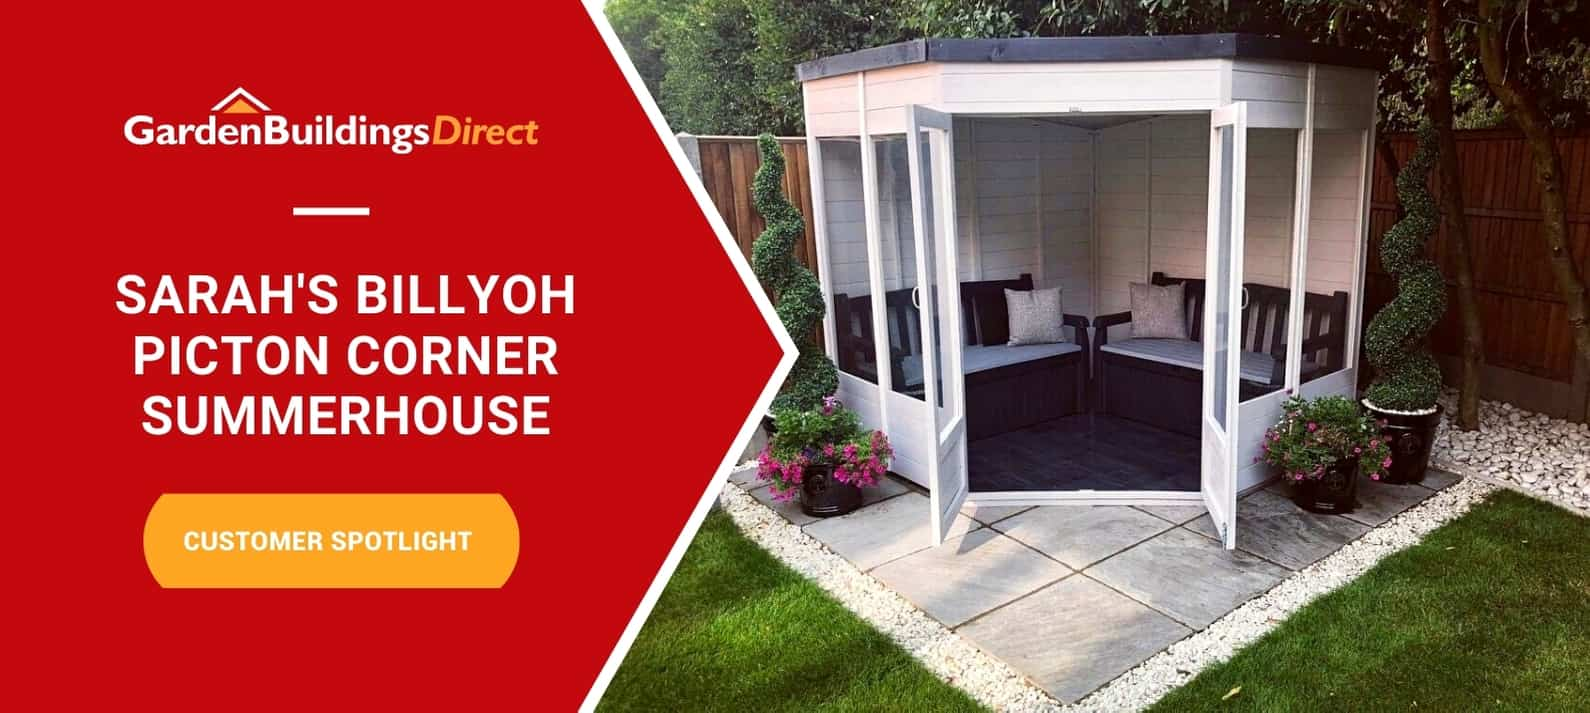 BillyOh Picton corner Summerhouse on patio with Garden Buildings Direct logo and red arrow banner